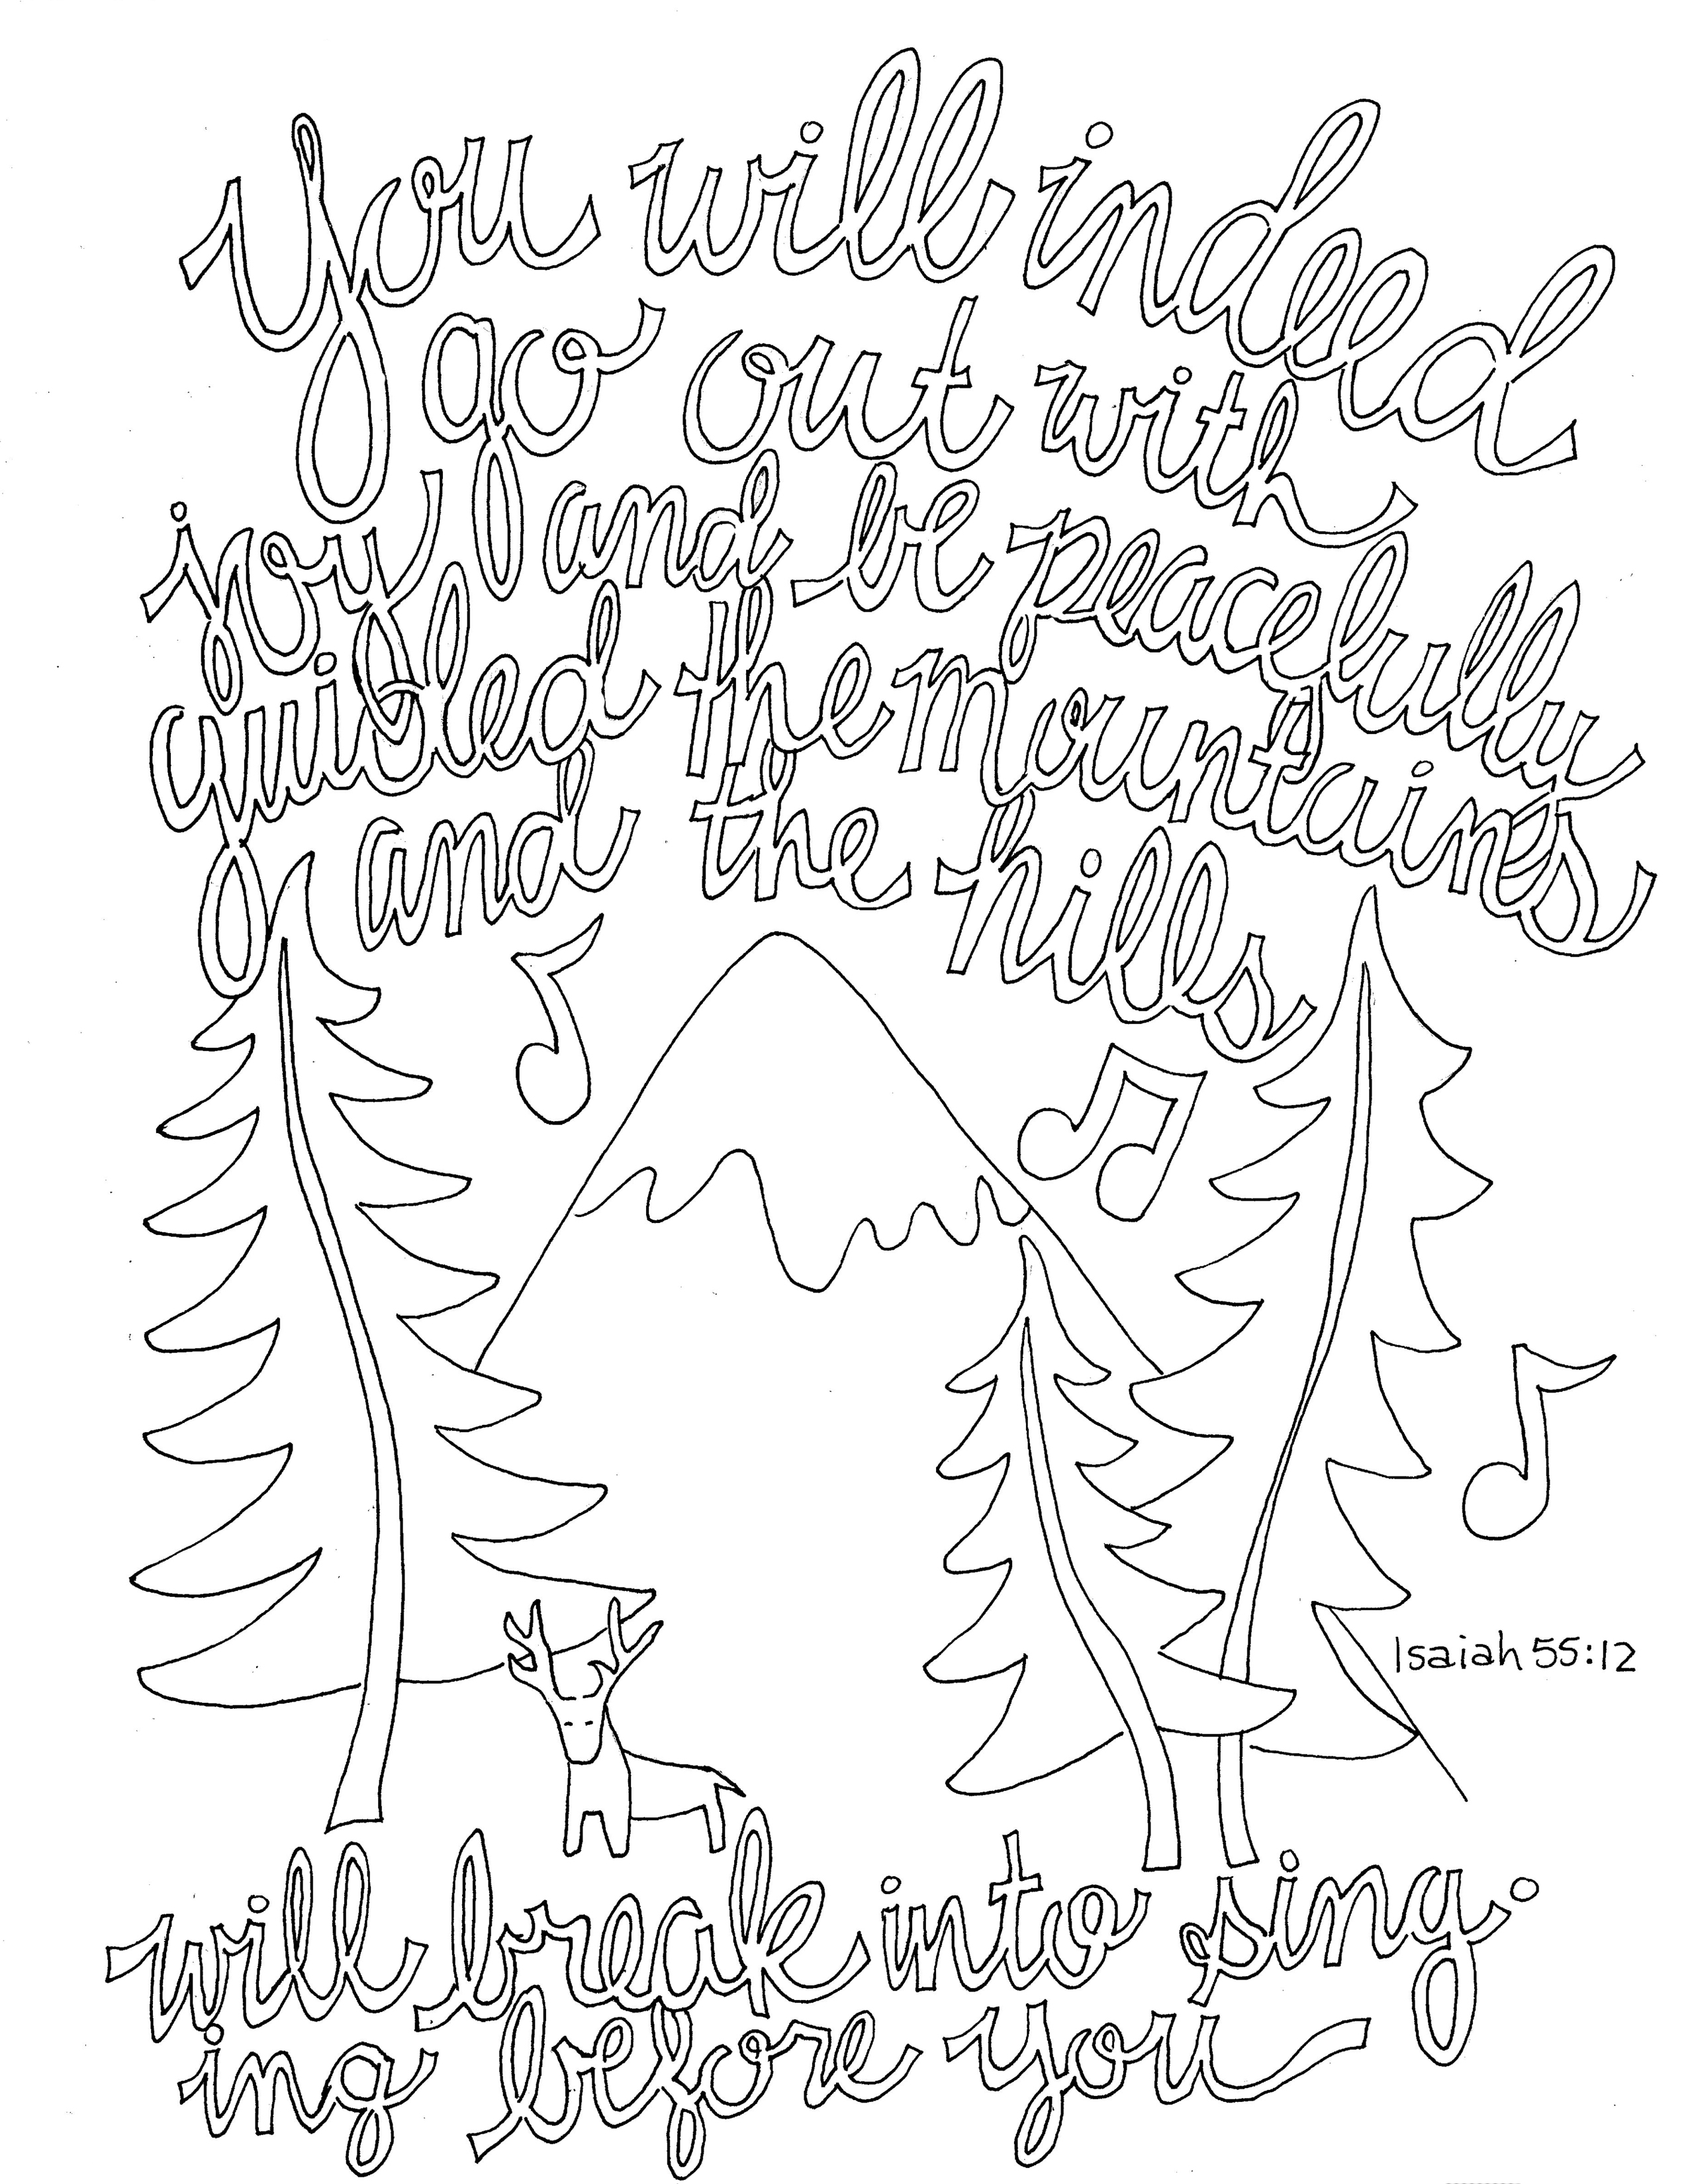 Isaiah 55 12 Coloring Page From Victory Road